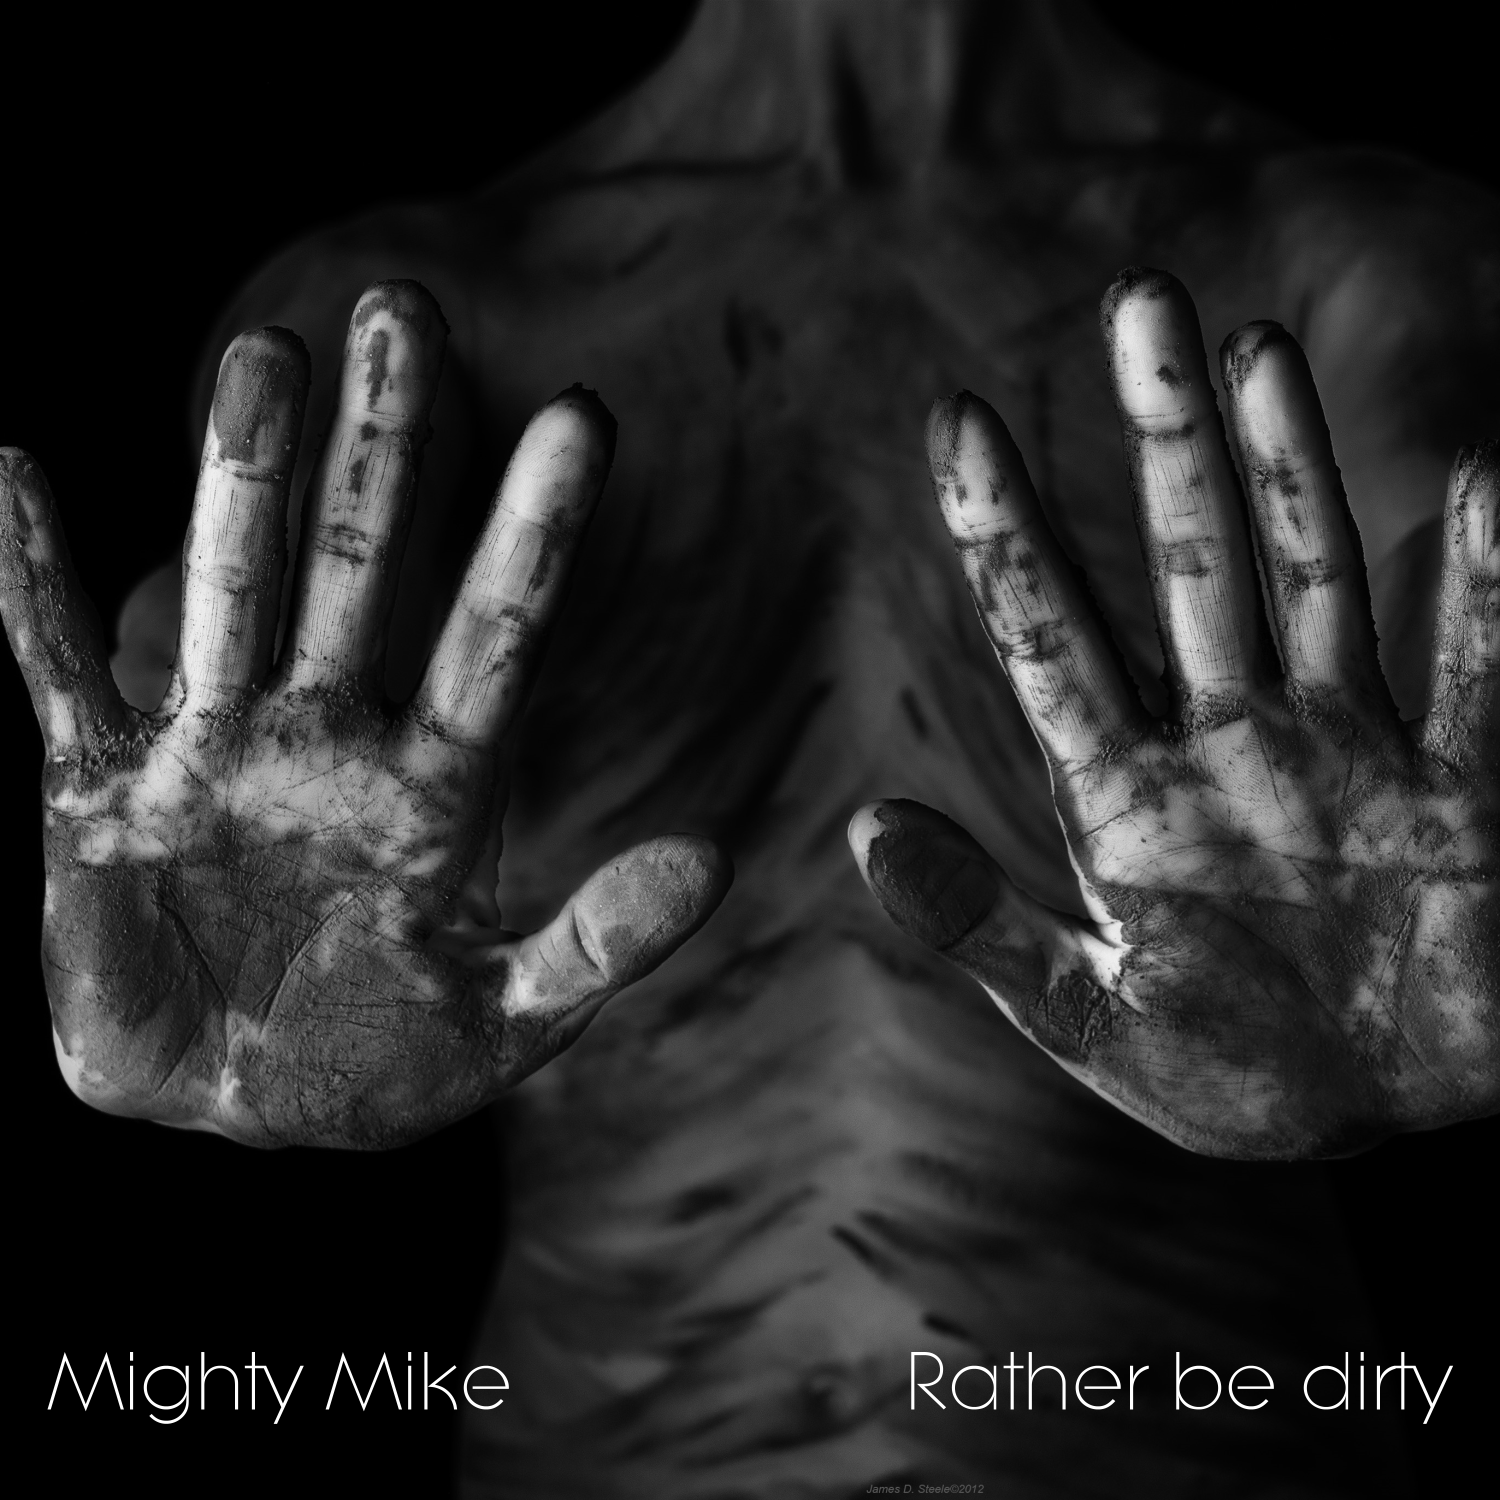 Rather be dirty (Michael Jackson / Clean Bandit) (2014)